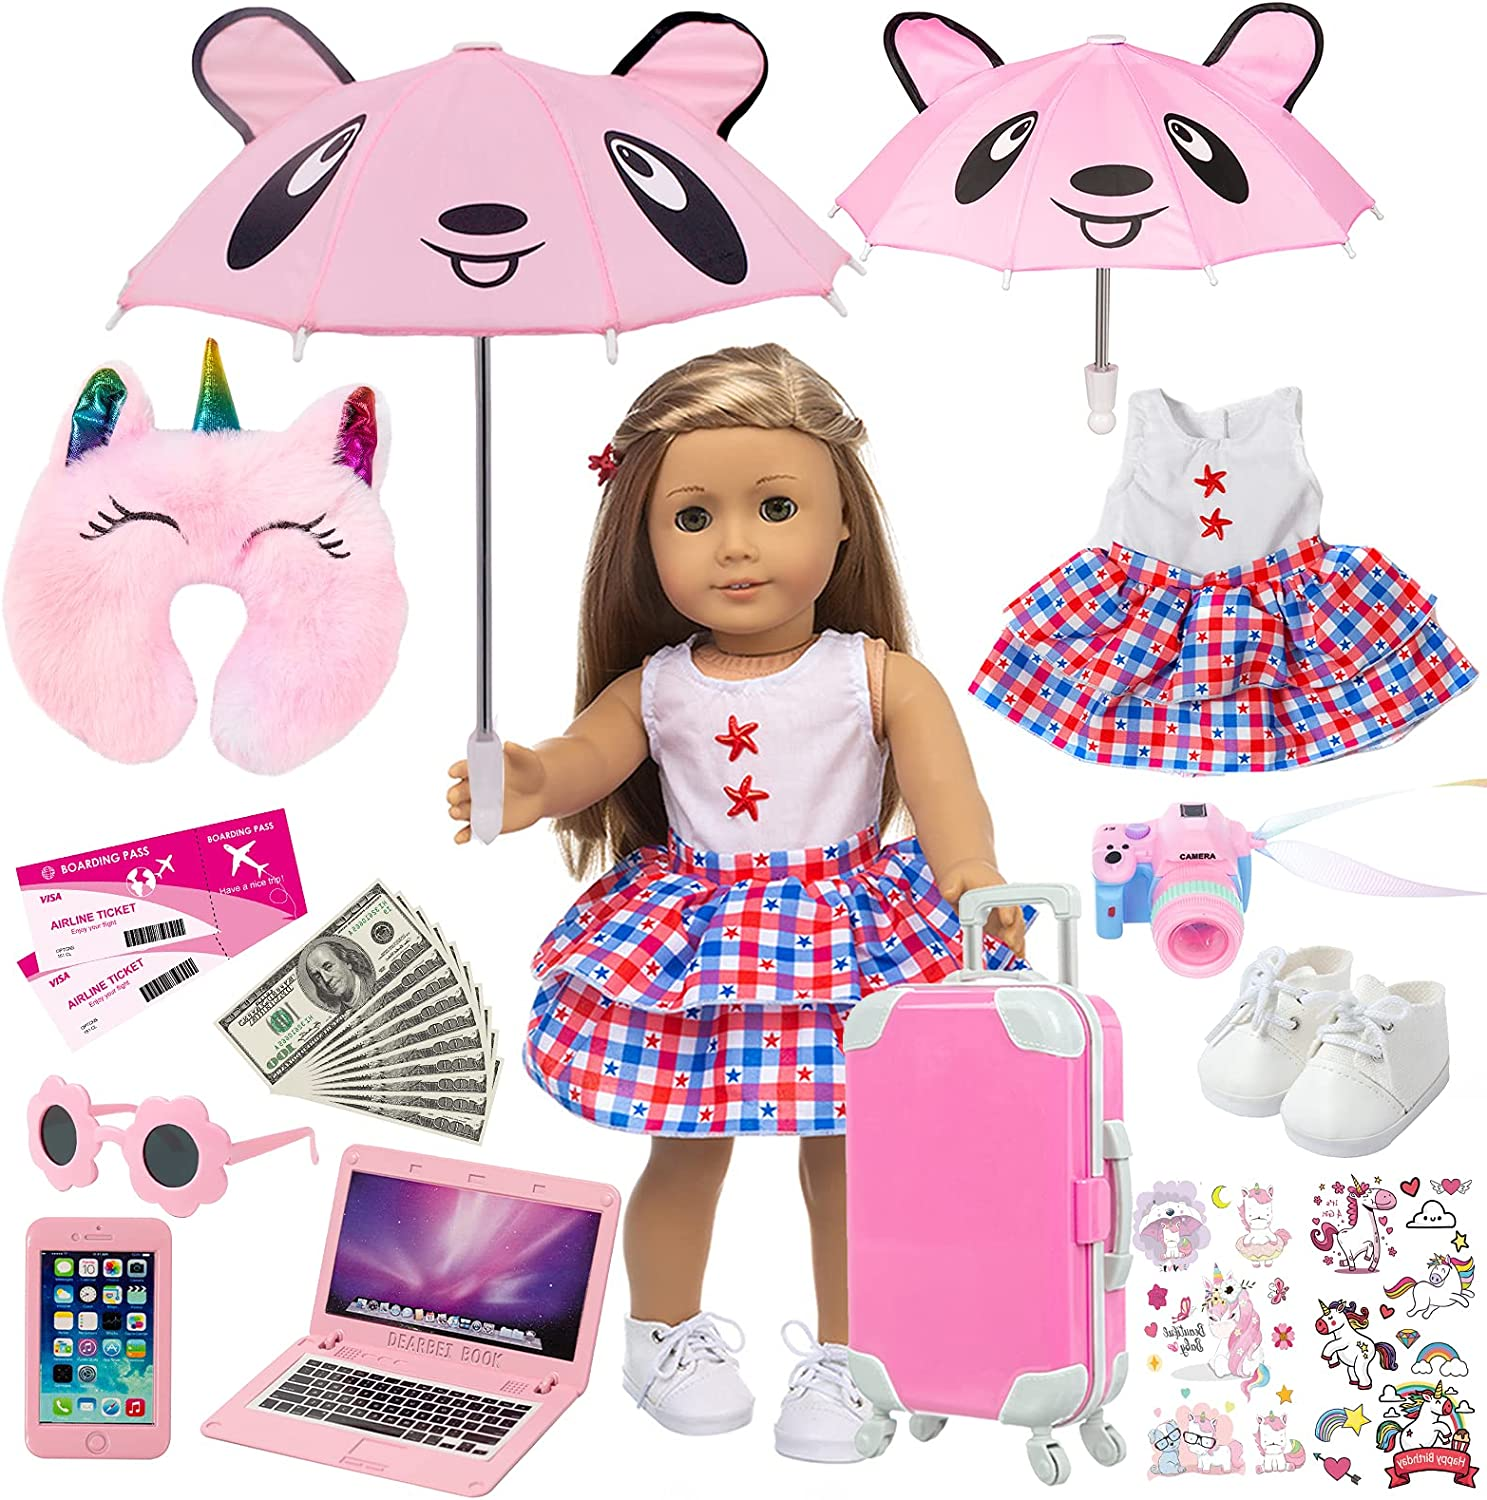 ZQDOLL American 18 Dedication inch Inexpensive Doll Clothes and - Trav Accessories